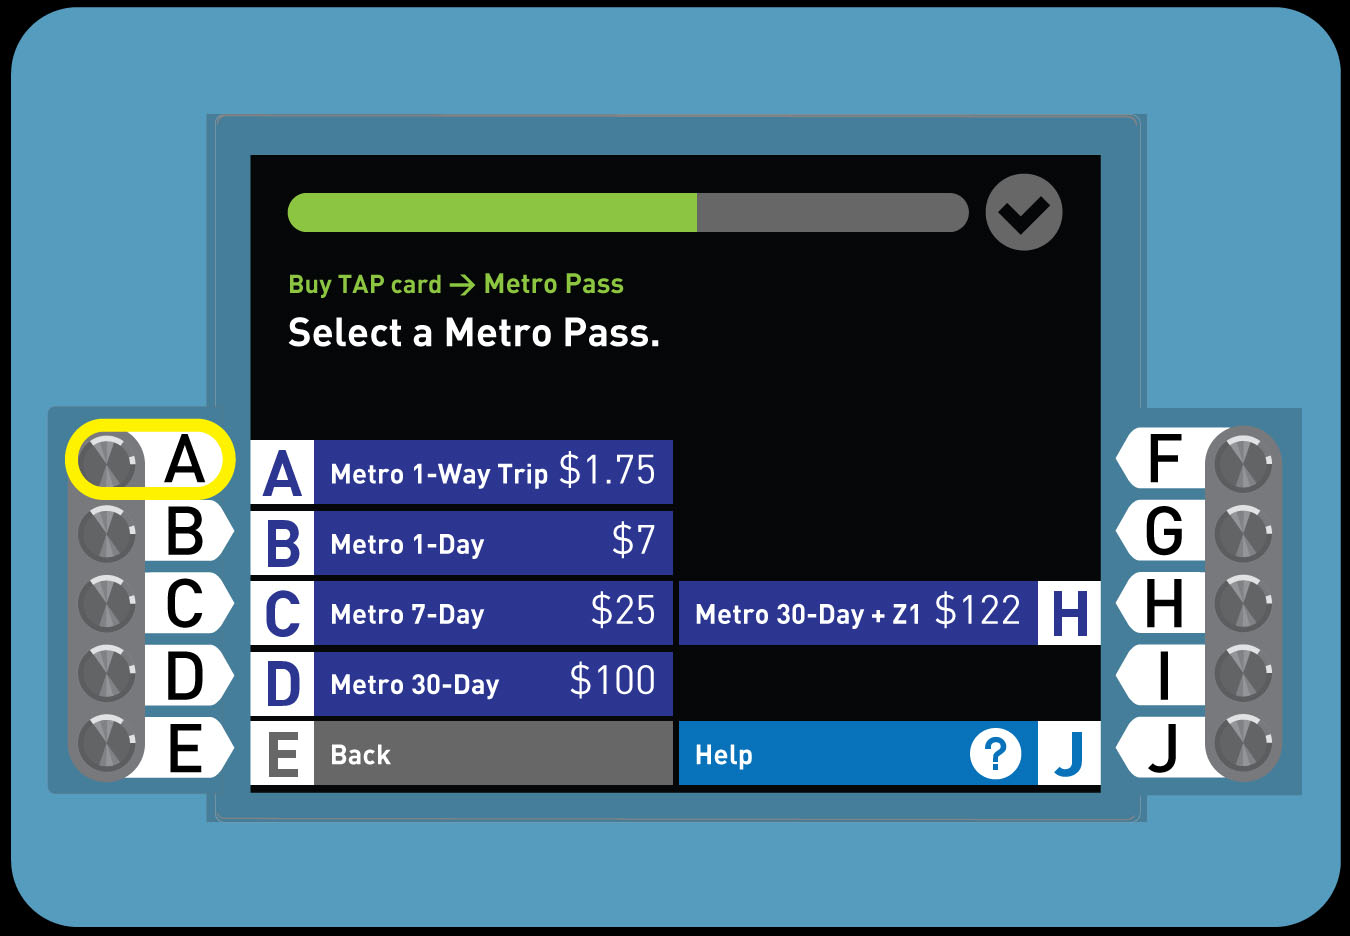 4. Buy a Regular TAP card with Full Fare 1-Way Trip